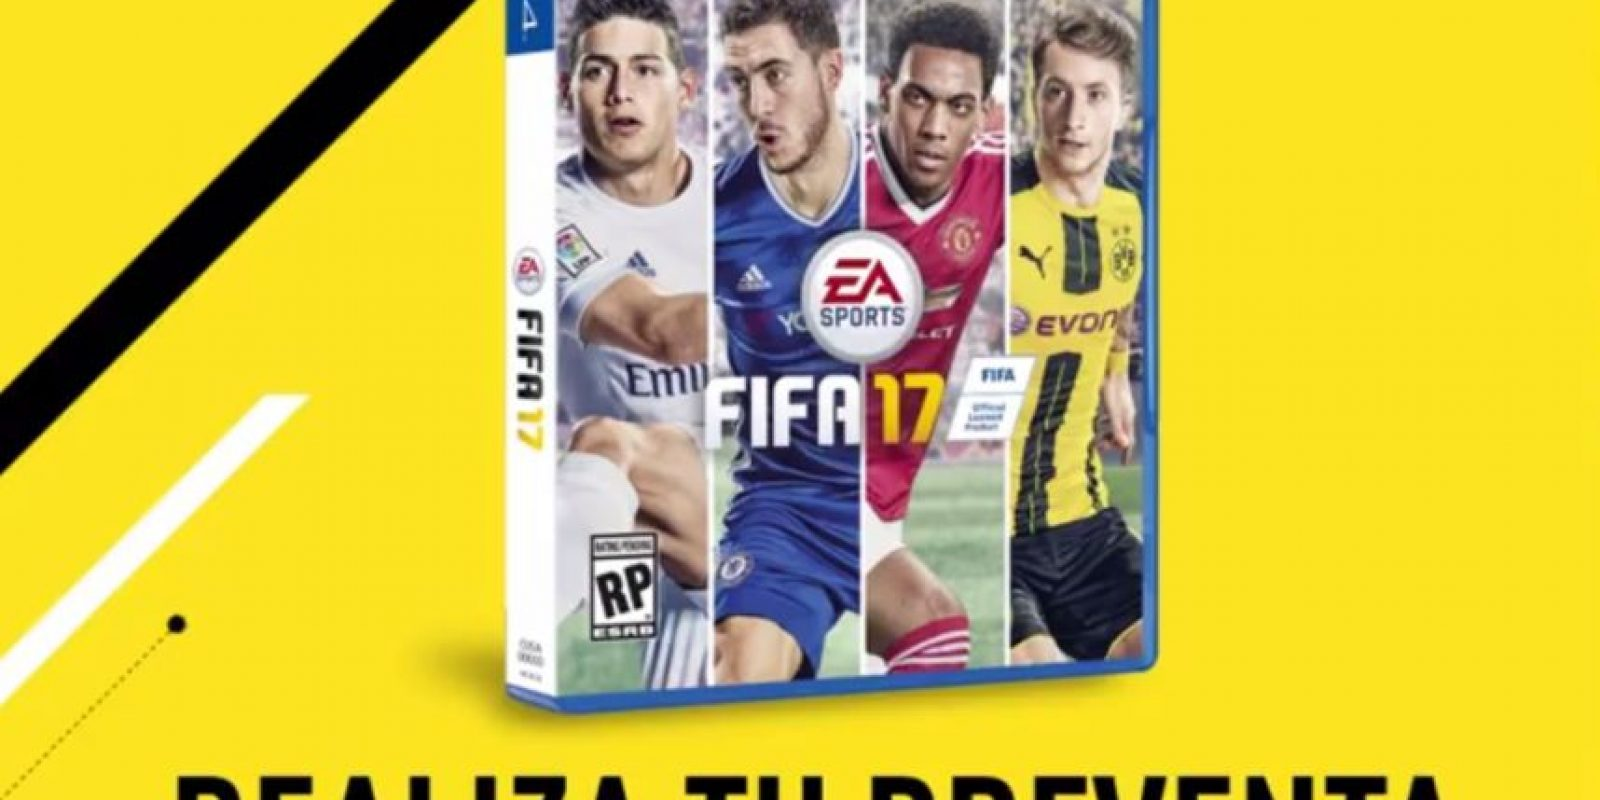 Foto: Facebook EA SPORTS FIFA Latinoamérica